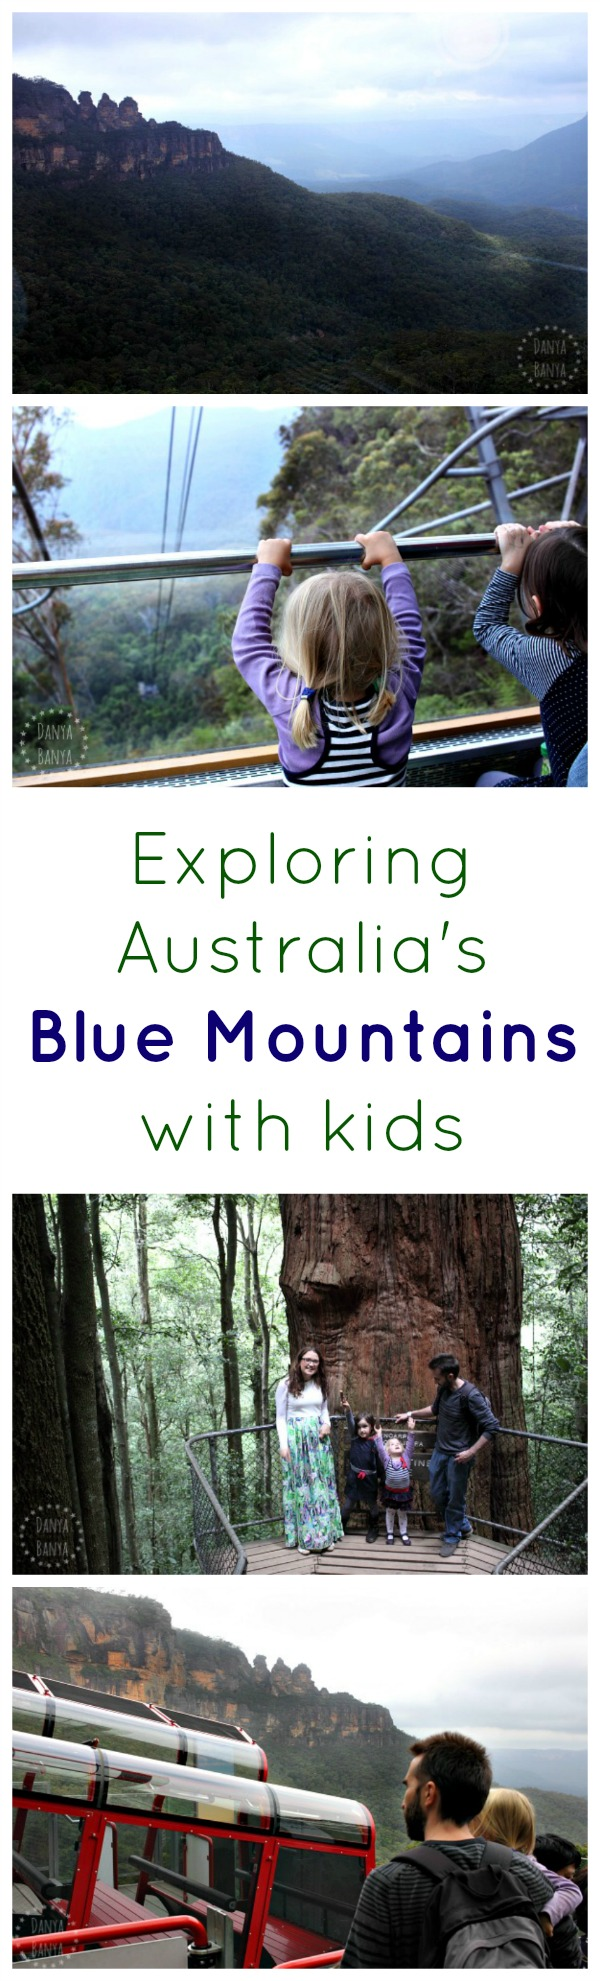 Exploring Australias Blue Mountains with kids